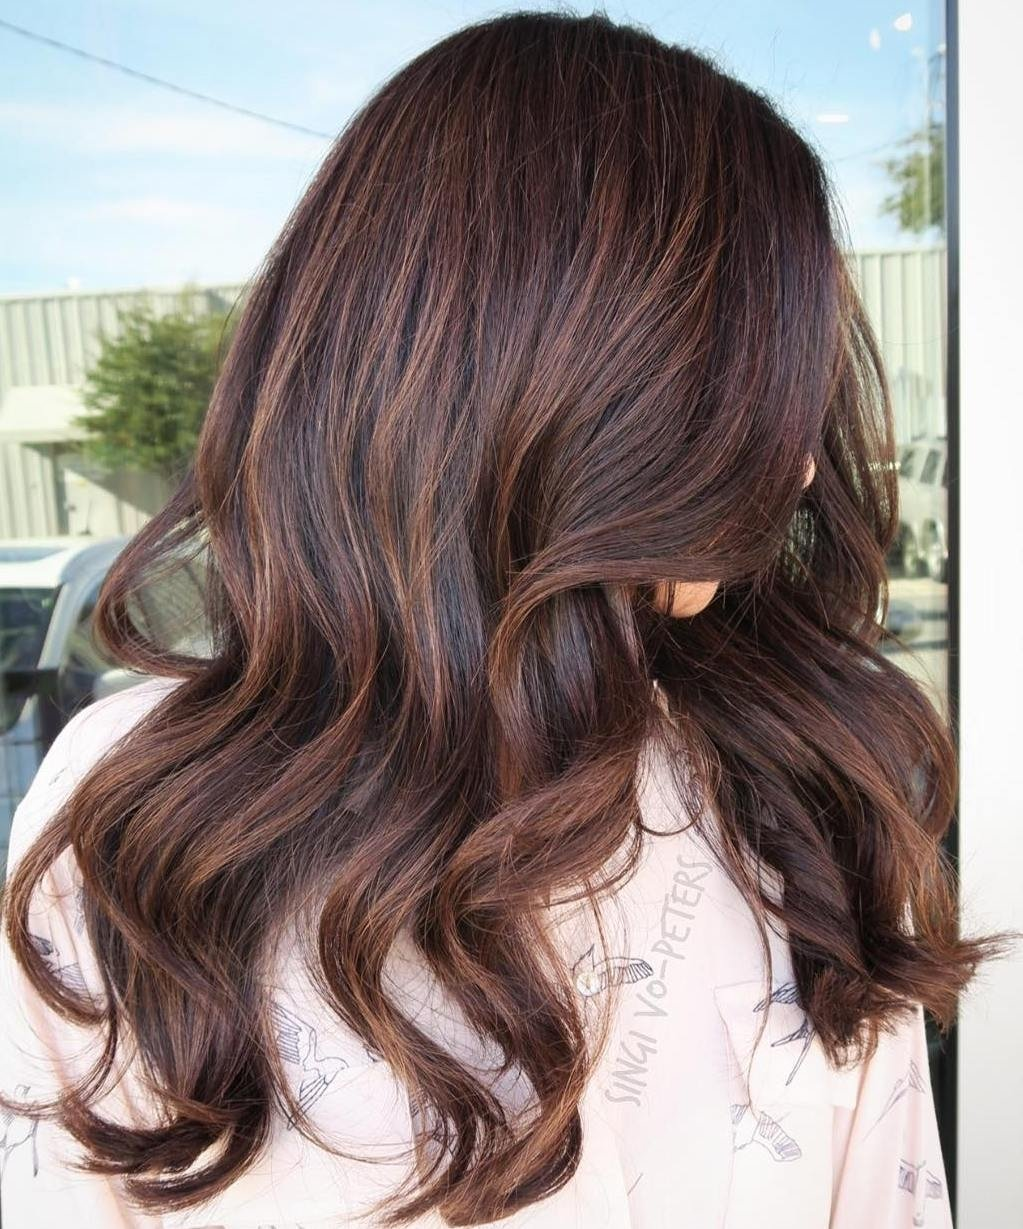 10 Awesome Hair Color Ideas For Brunettes With Highlights 60 chocolate brown hair color ideas for brunettes subtle